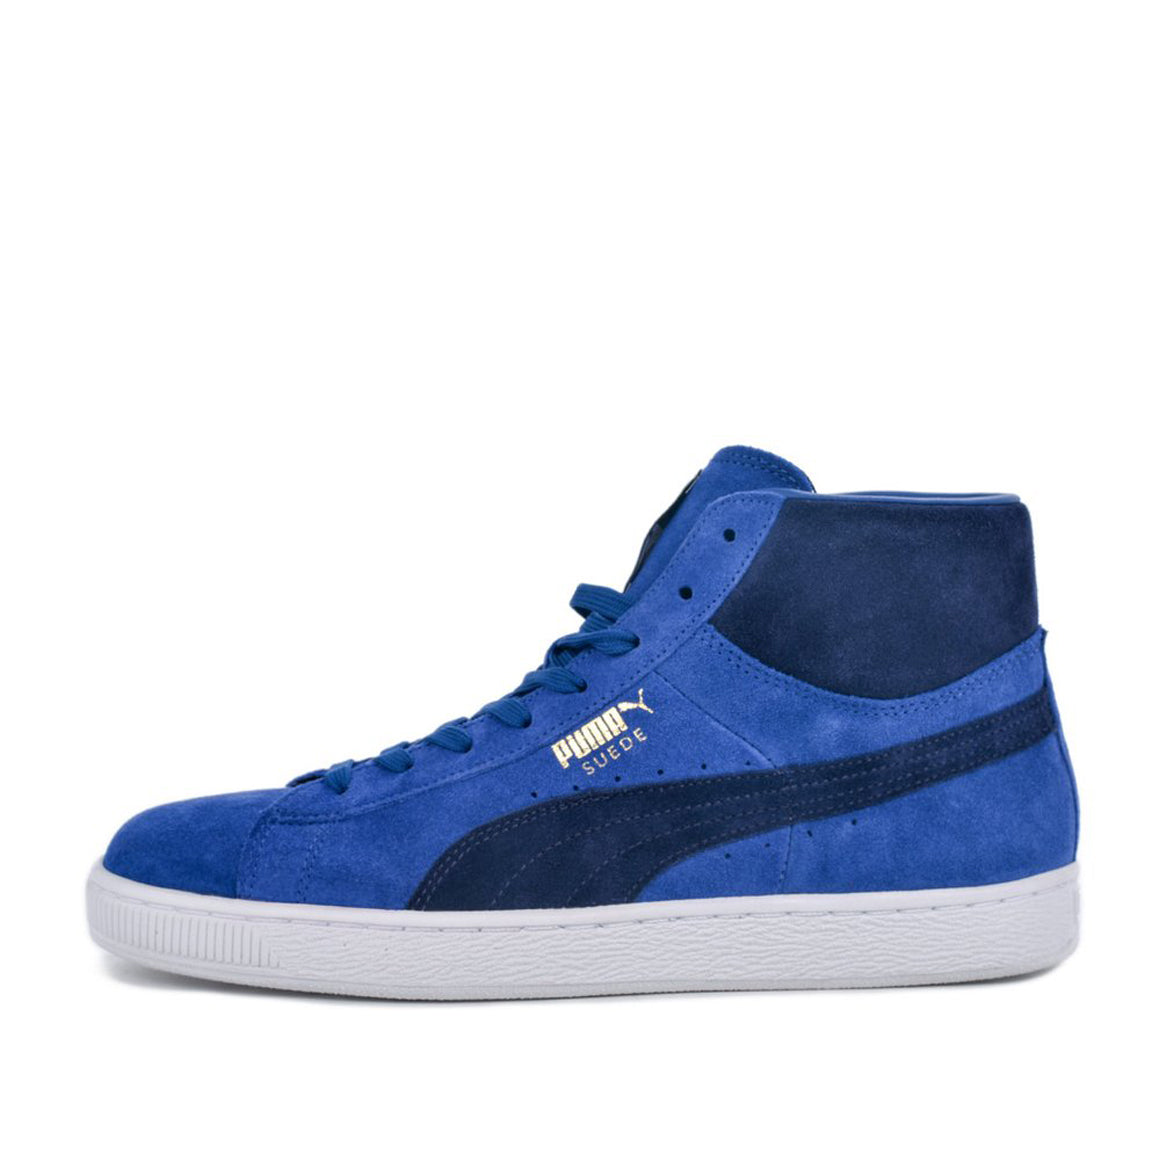 SUEDE MID CLASSIC+ - LIMOGES